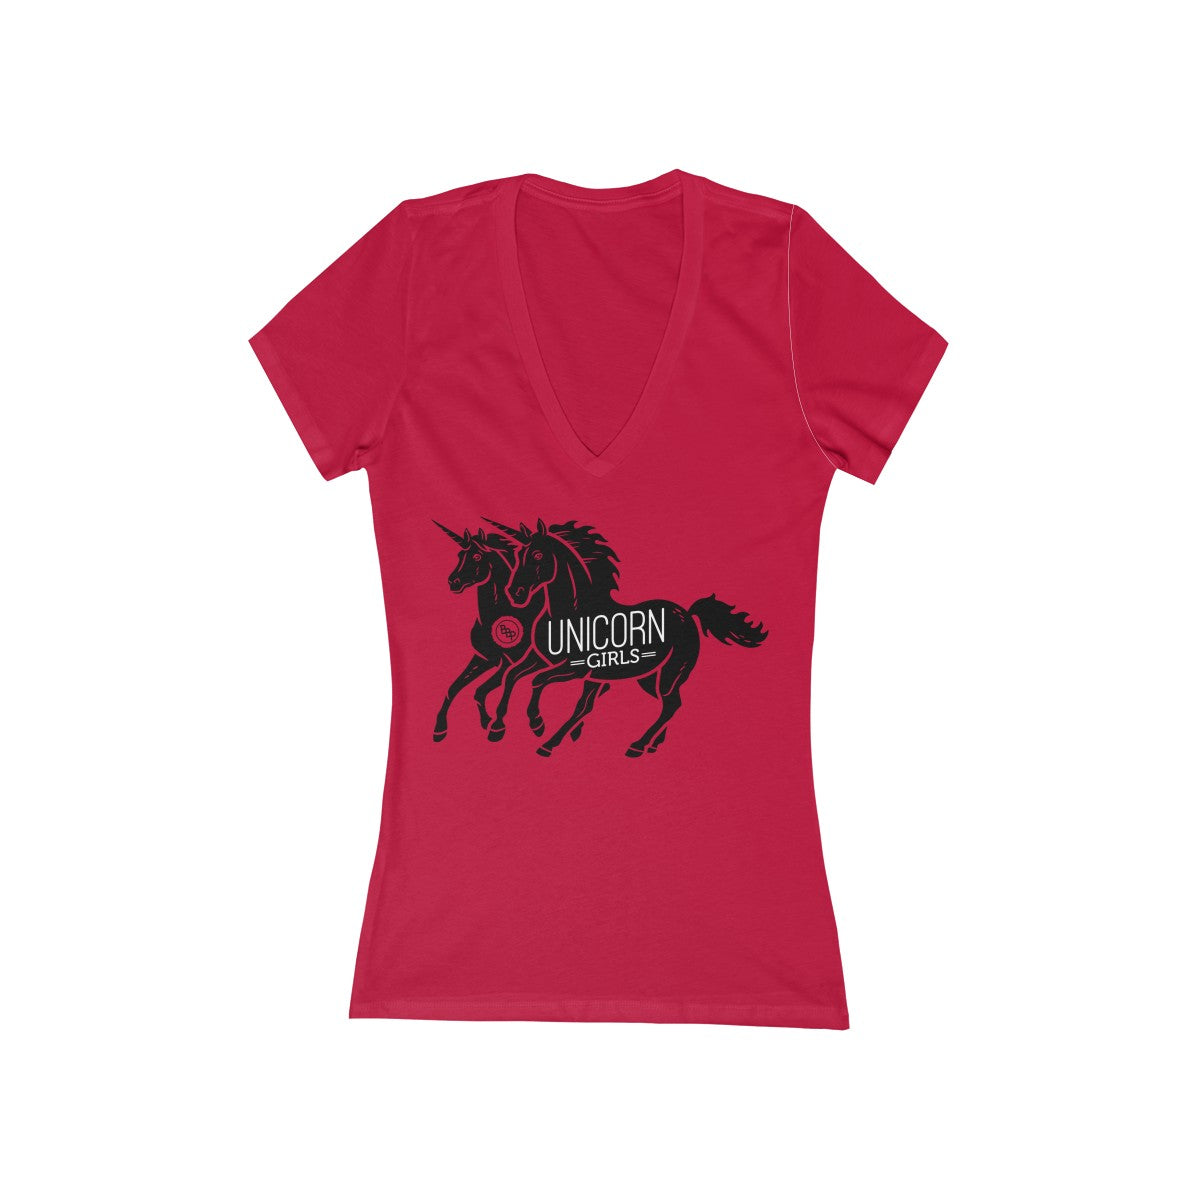 Bradley Brew Project - Unicorn Girls Women's V-Neck